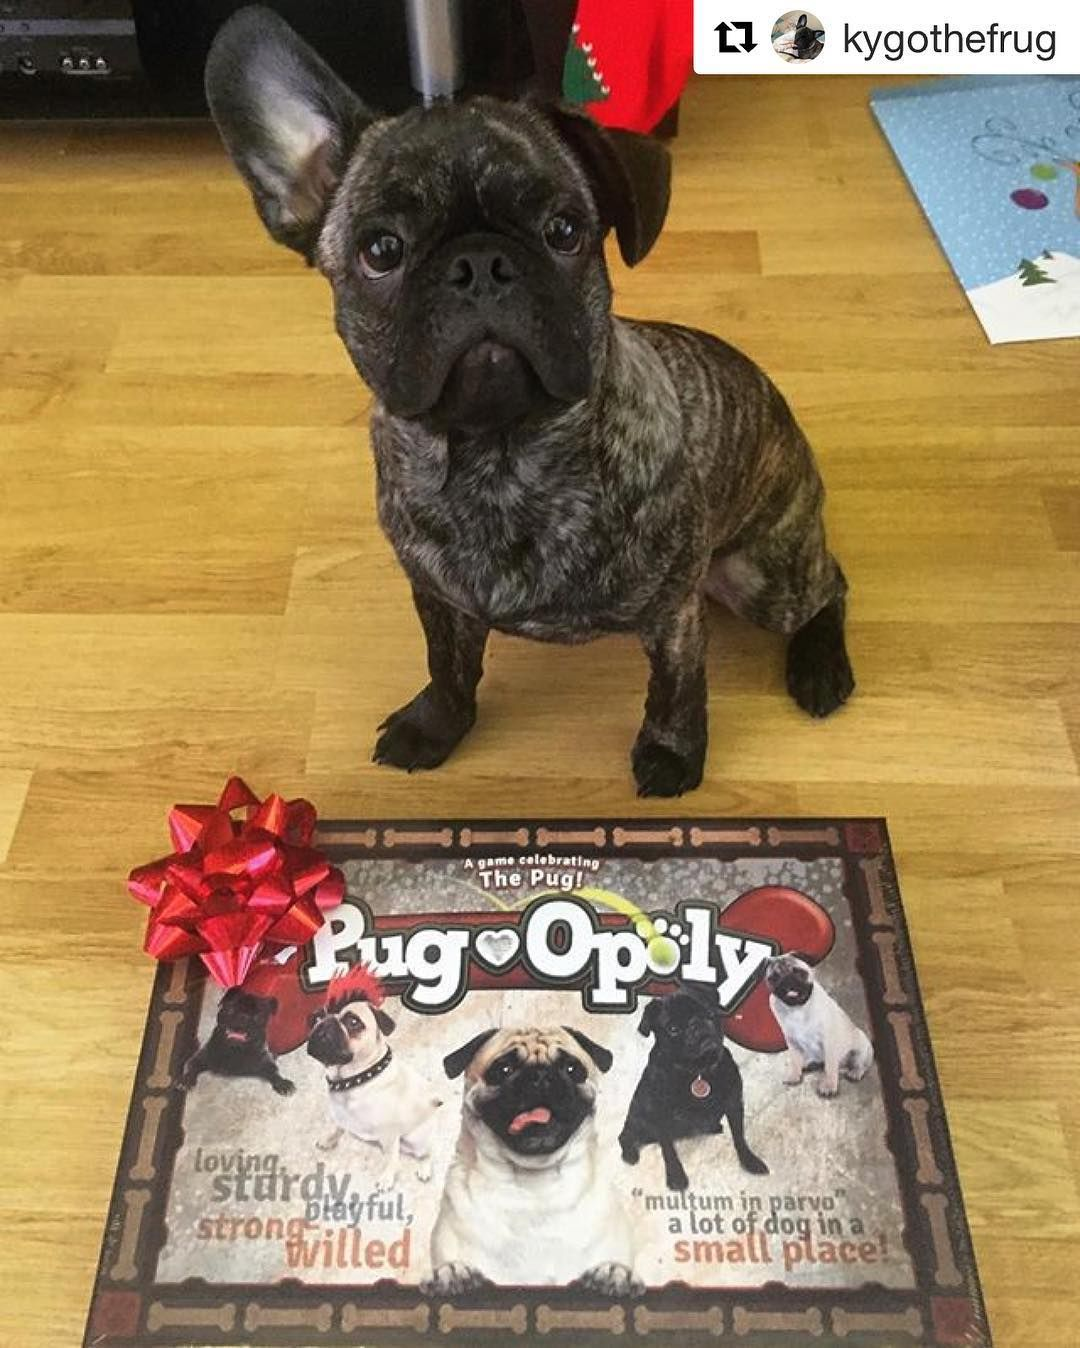 Here S A Mini Tbt To Christmas Where Kygothefrug Got A Copy Of